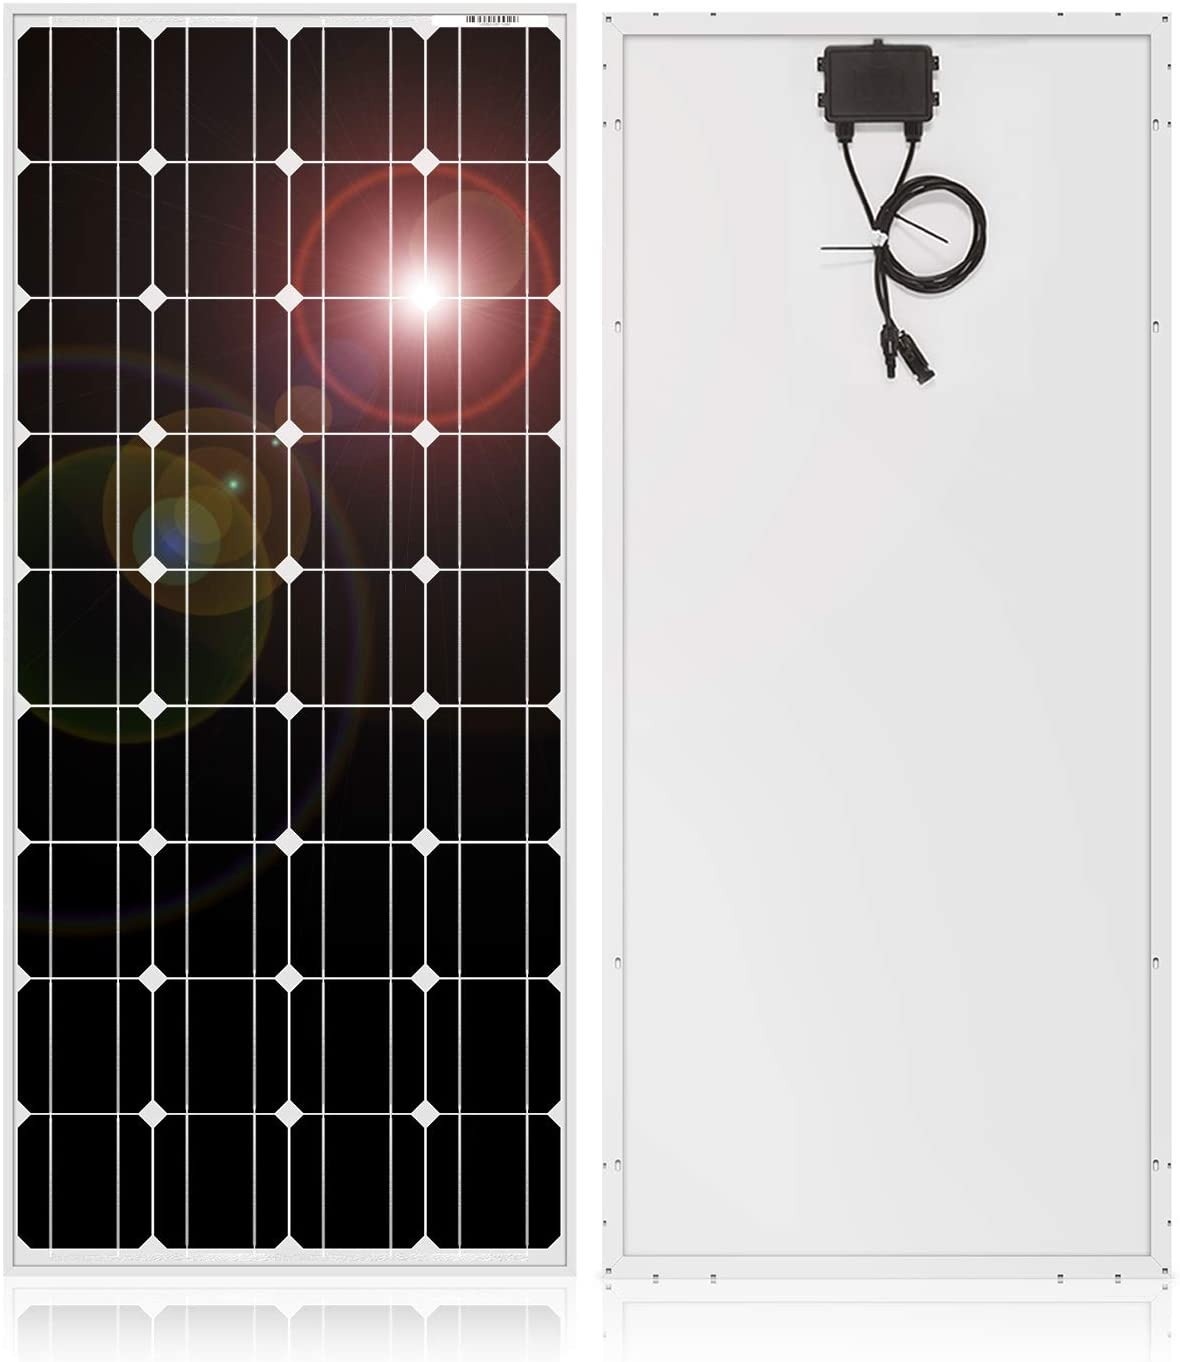 DOKIO 100w 18v Solar Panel German TÜV Certification Monocrystalline(HIGH Efficiency) to Charge 12v Battery(Vented AGM Gel) or Off-Grid and Hybrid Power System for Home/Garden RV,Boat